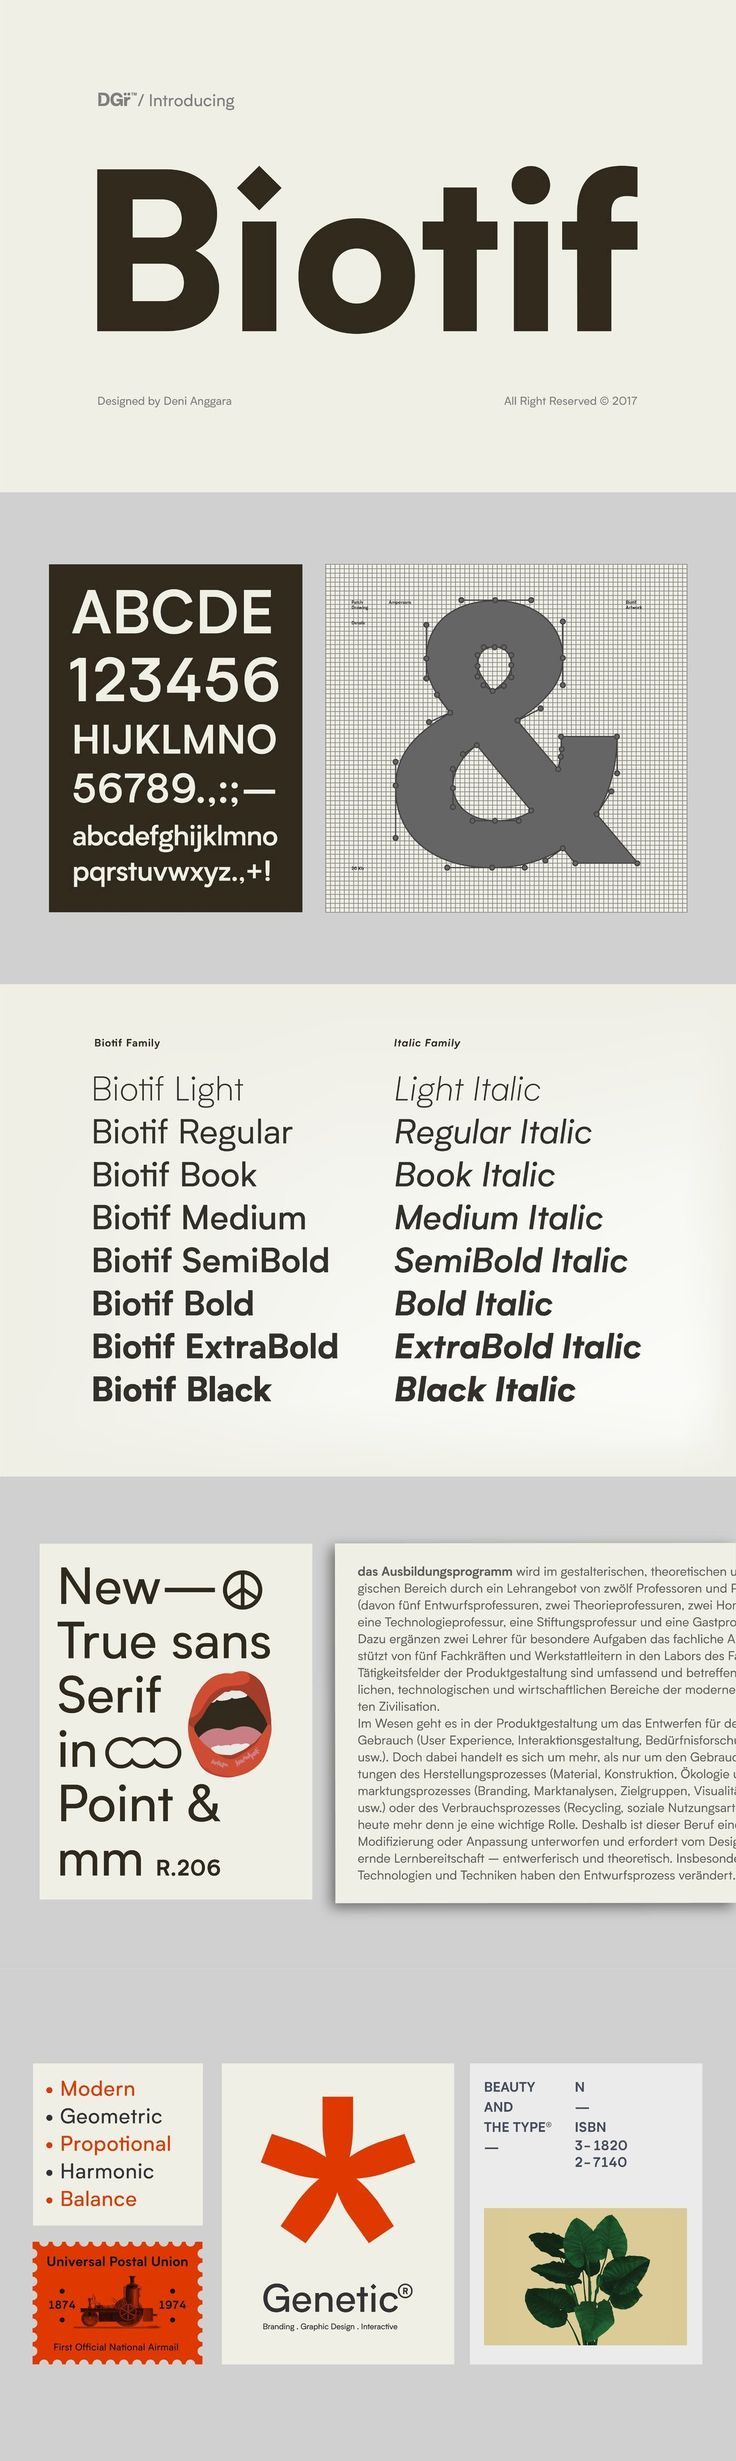 Biotif - Biotif is a 16 weight, geometric, sans-serif font design, inspired by modern style as well as indu...